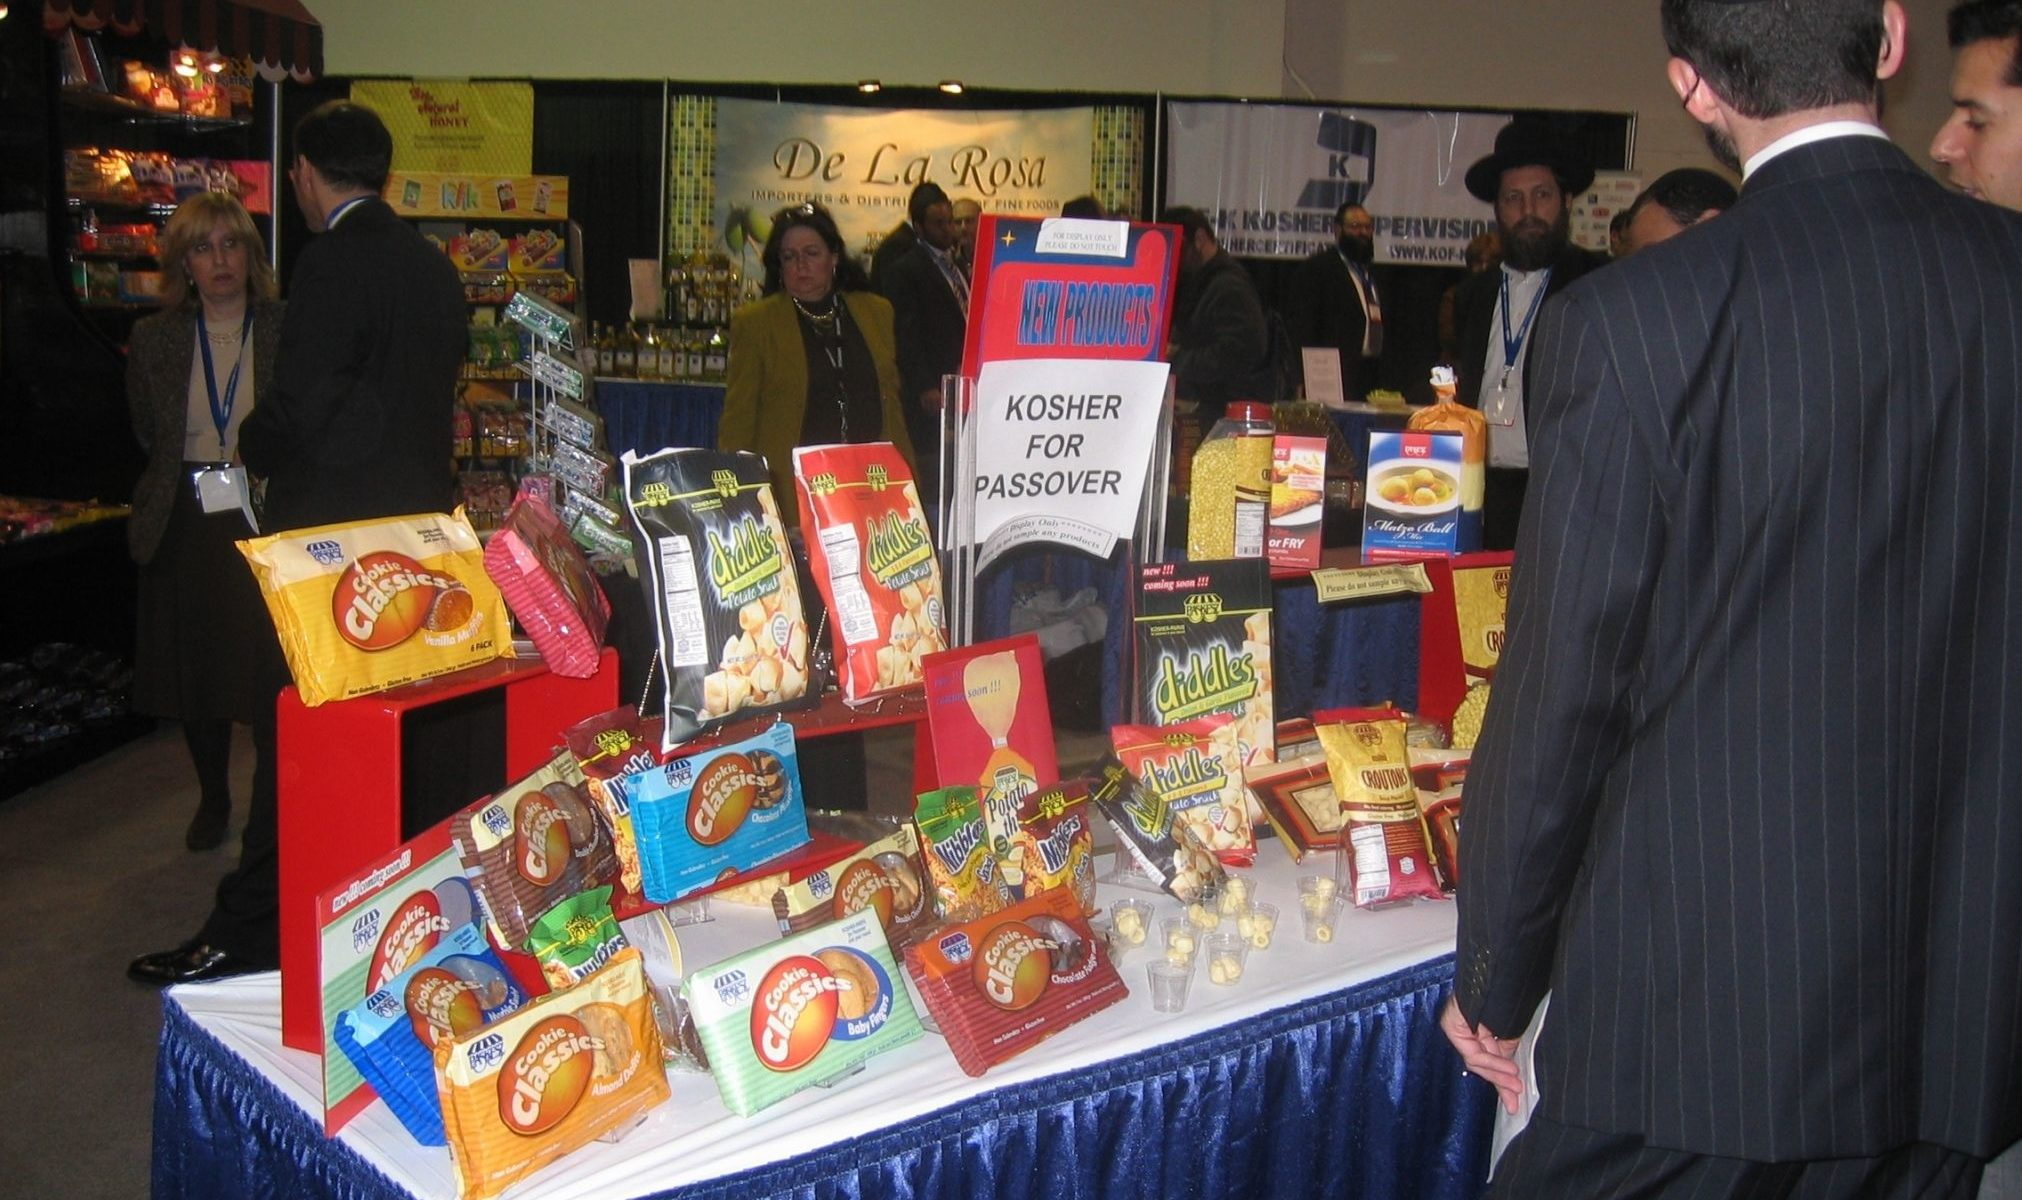 keeping kosher for passover